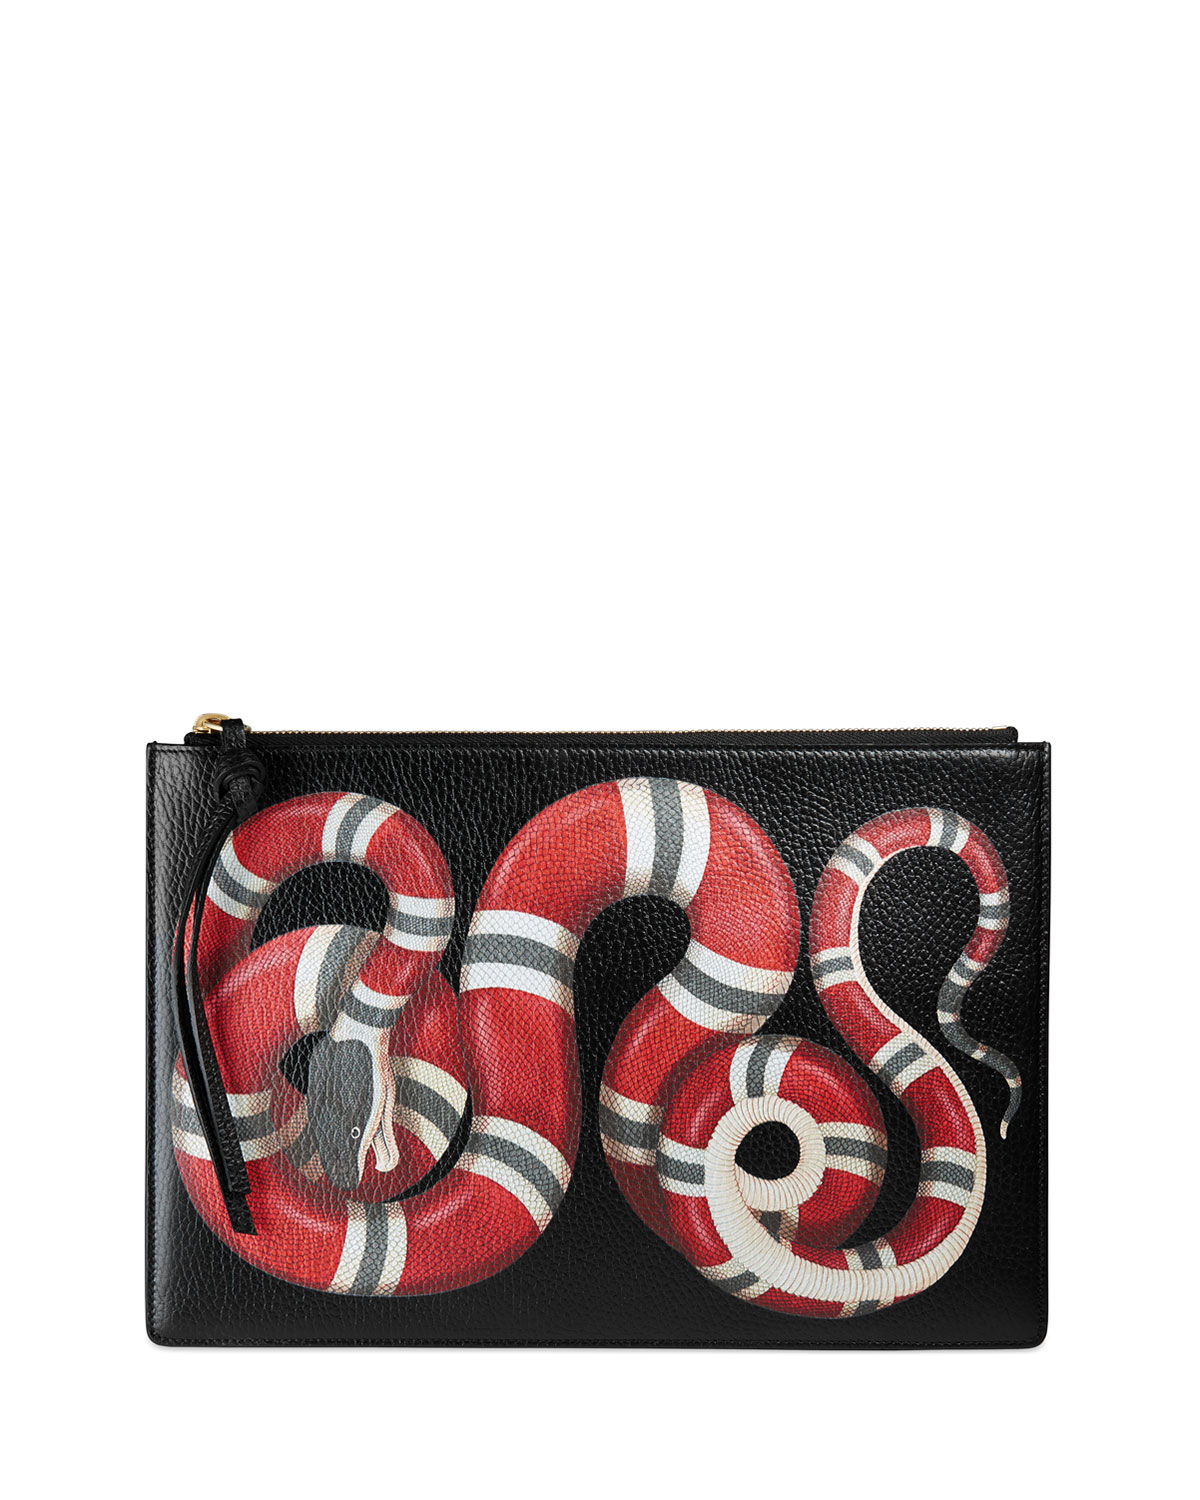 d385dcdb78468c Gucci Snake-Print Leather Clutch Bag, Black Pattern | Neiman Marcus